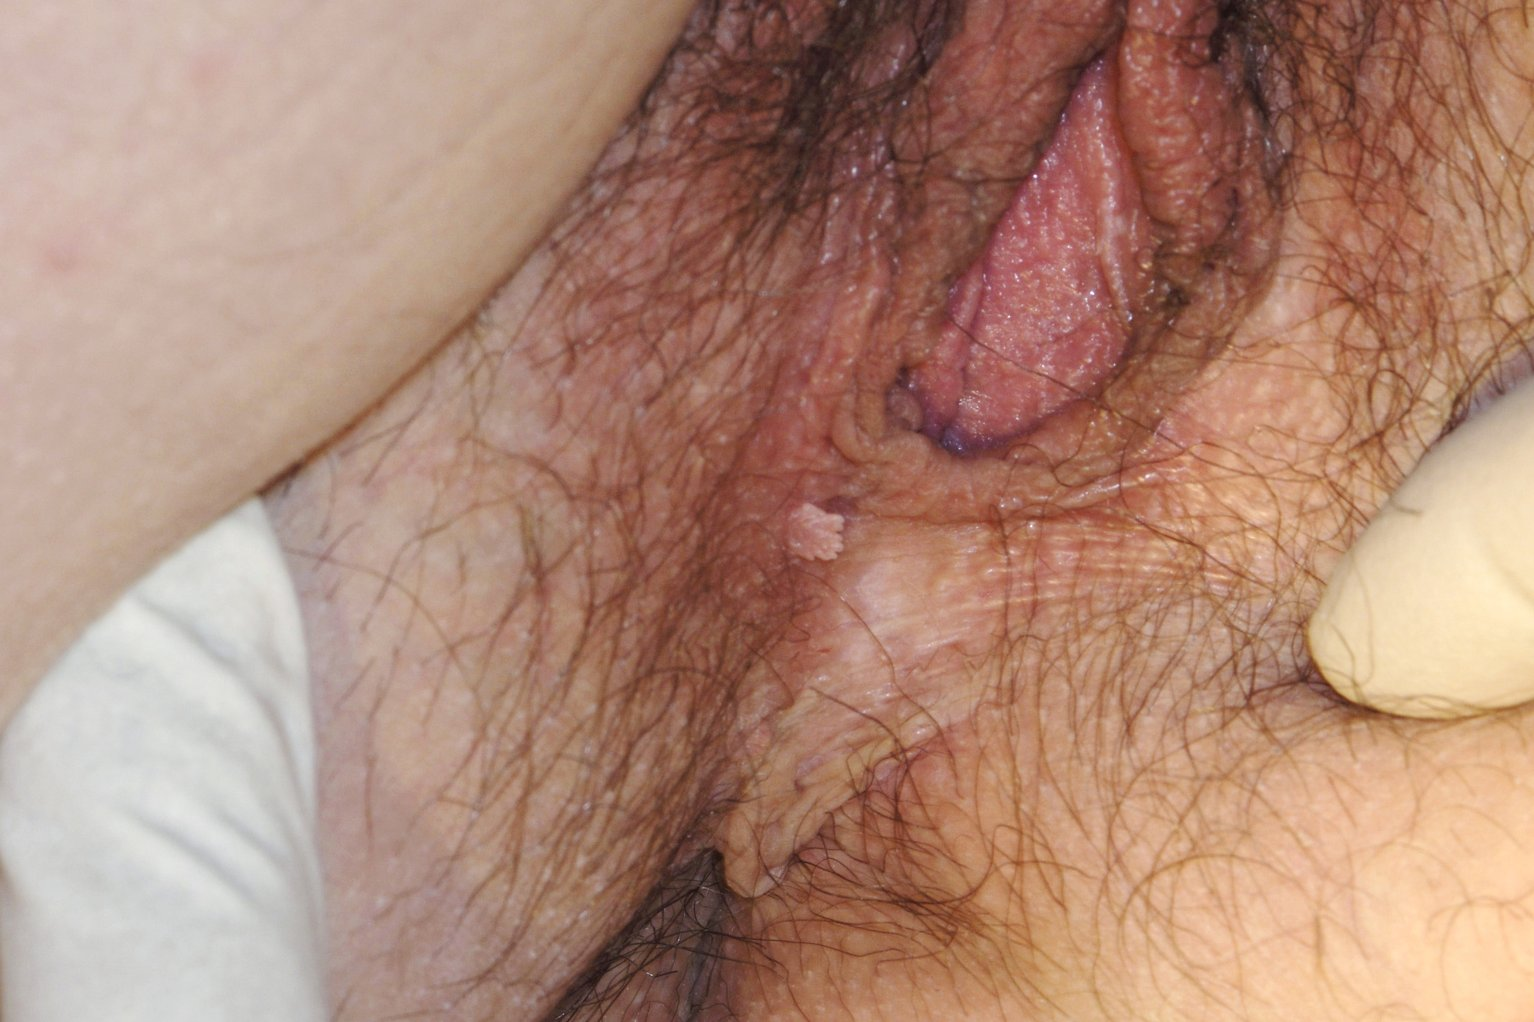 sex-with-internal-vaginal-warts-lovers